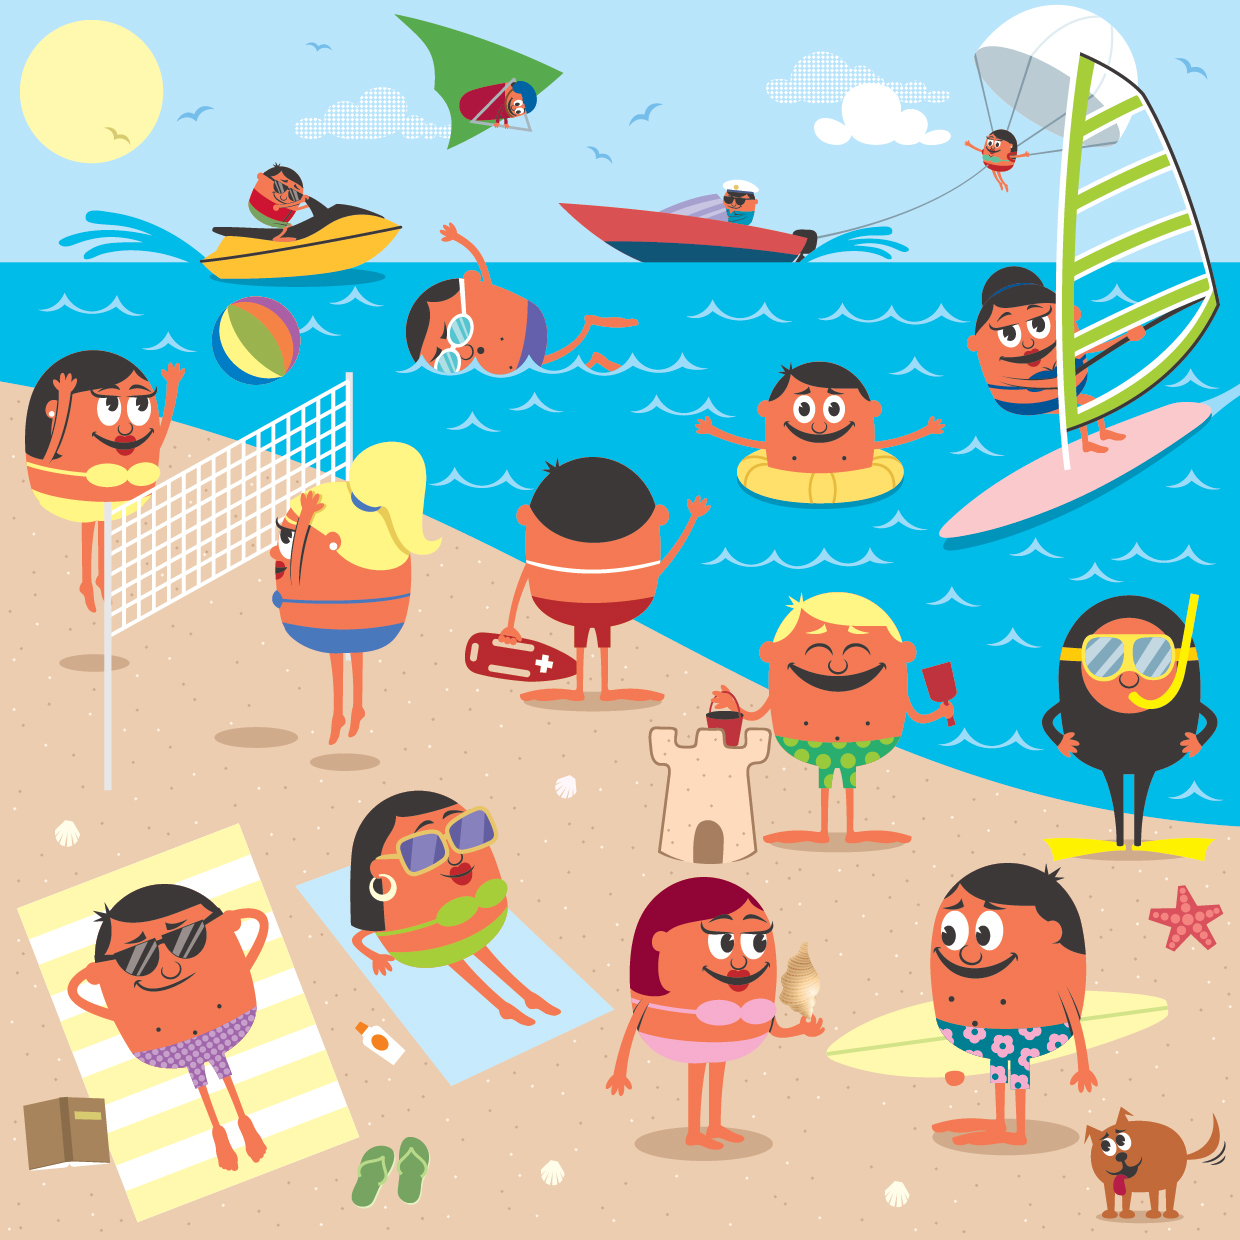 People at the beach clipart svg black and white download People tanning on the beach scene clipart - Clip Art Library svg black and white download